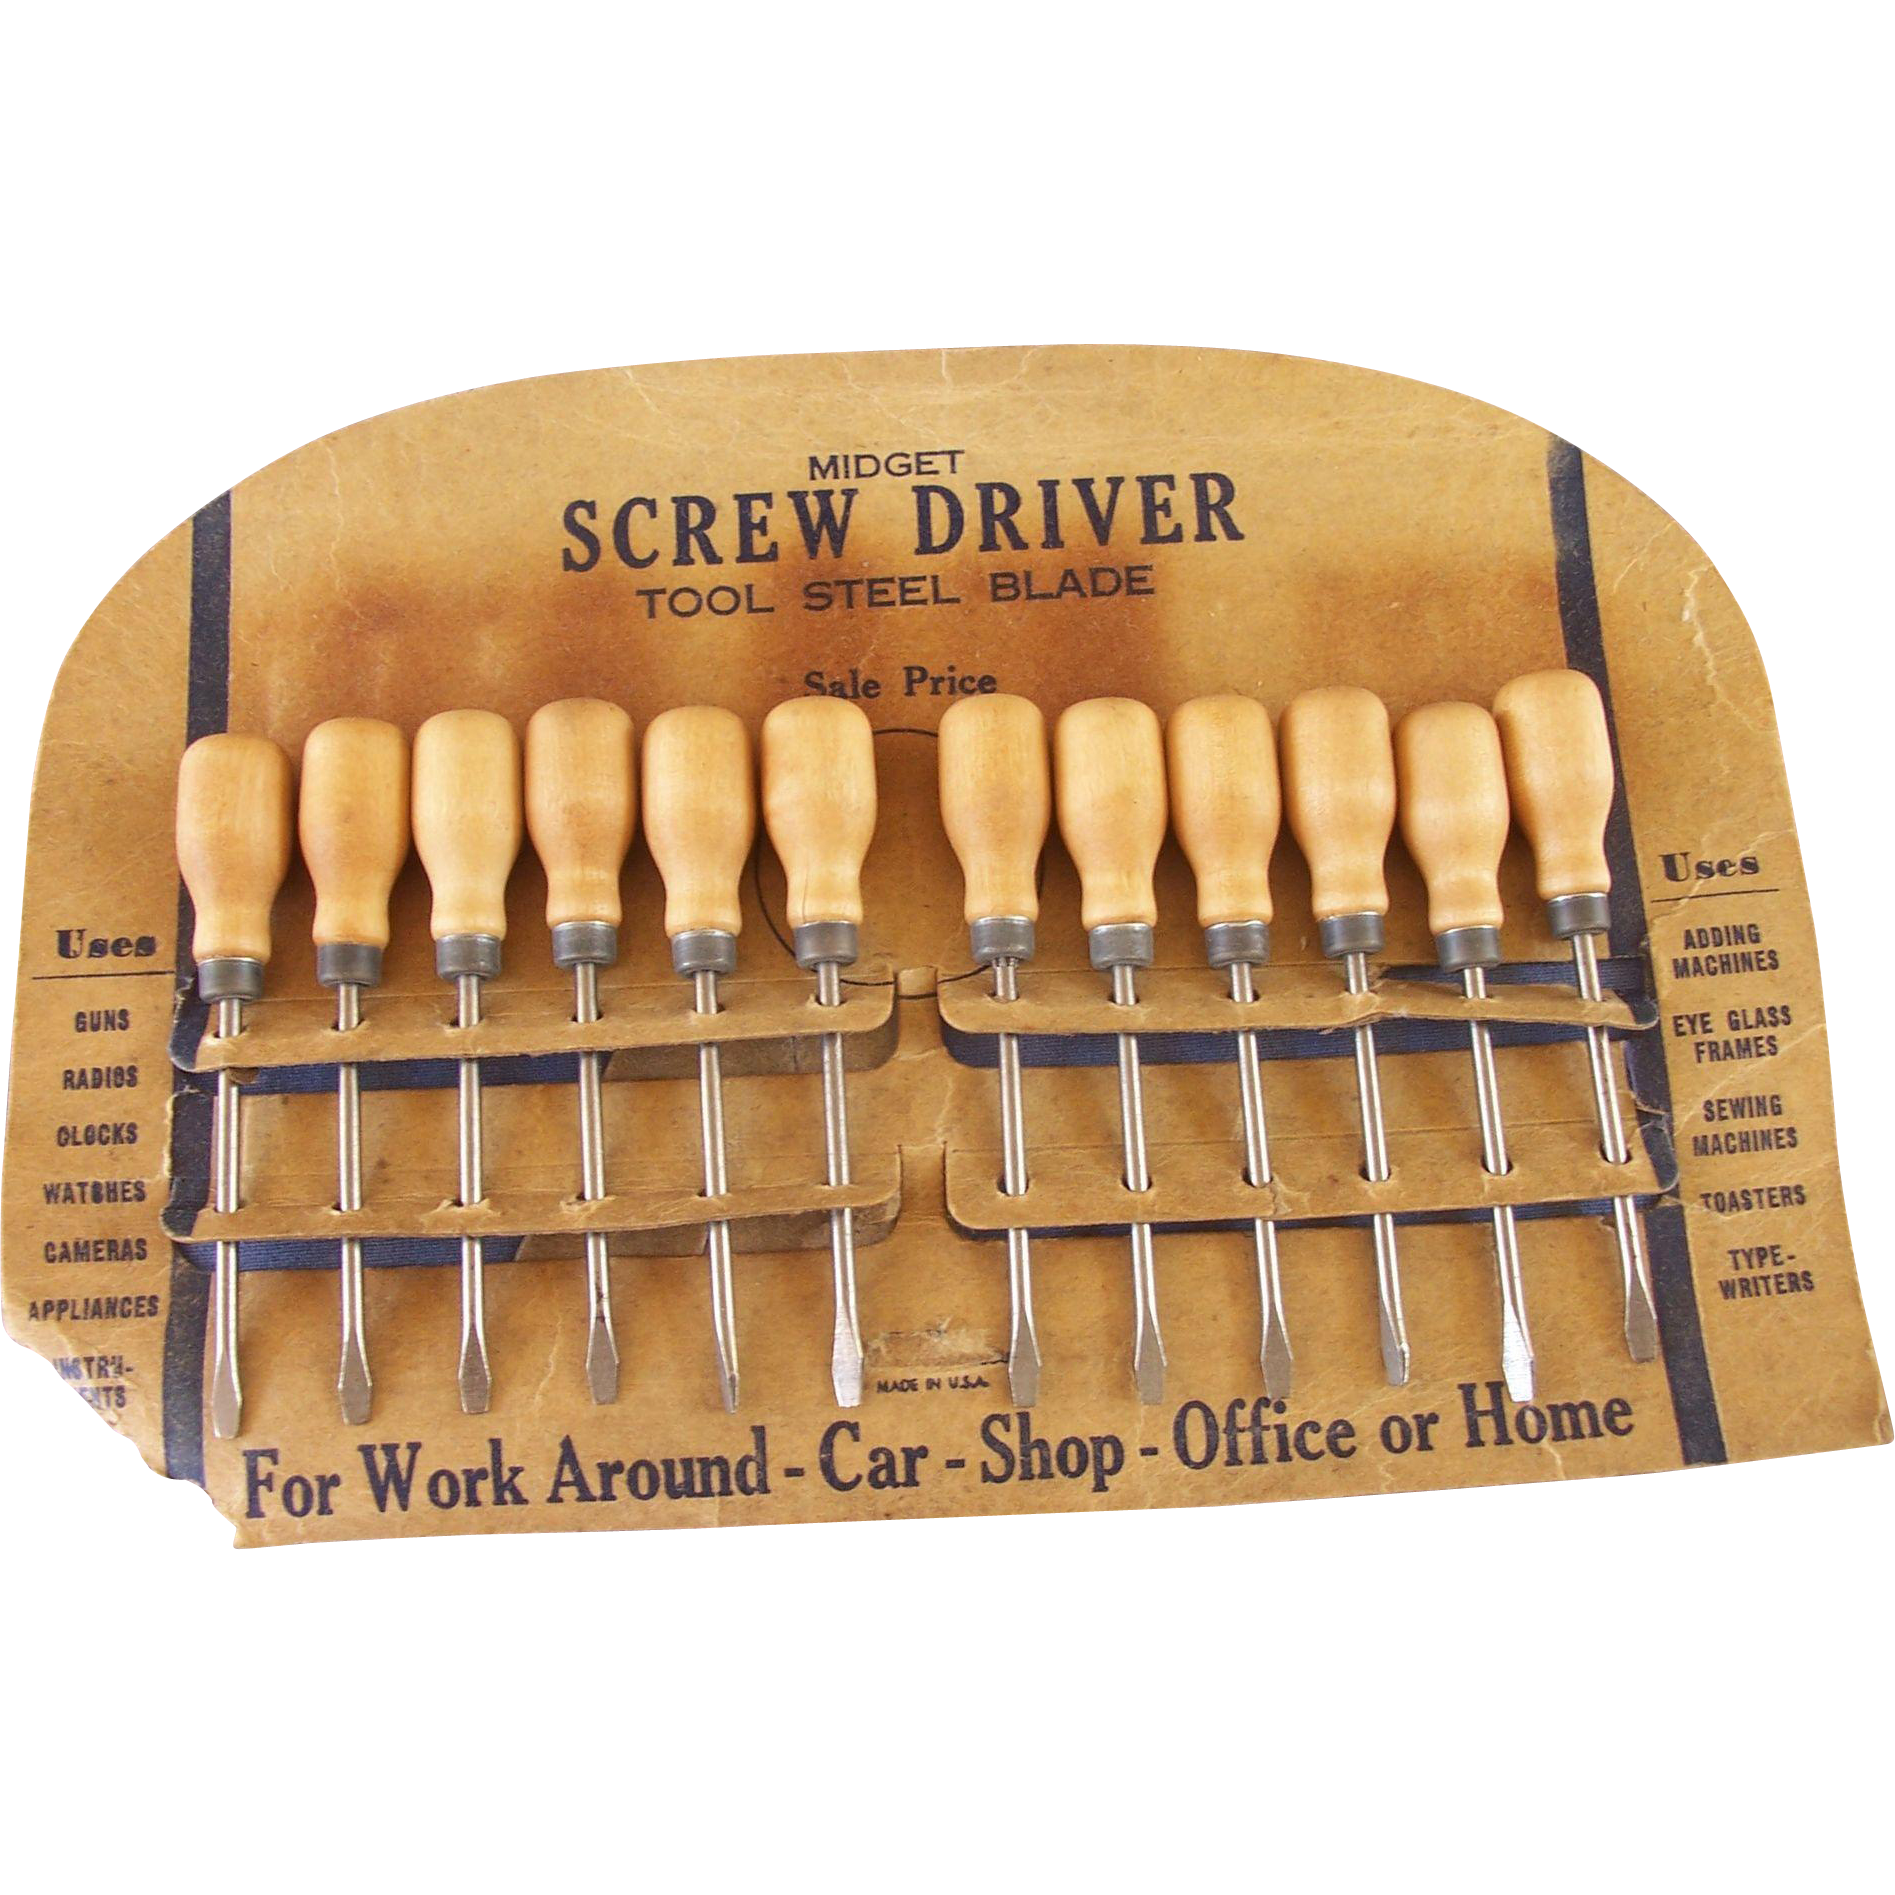 Vintage Midget Screwdriver Store Display